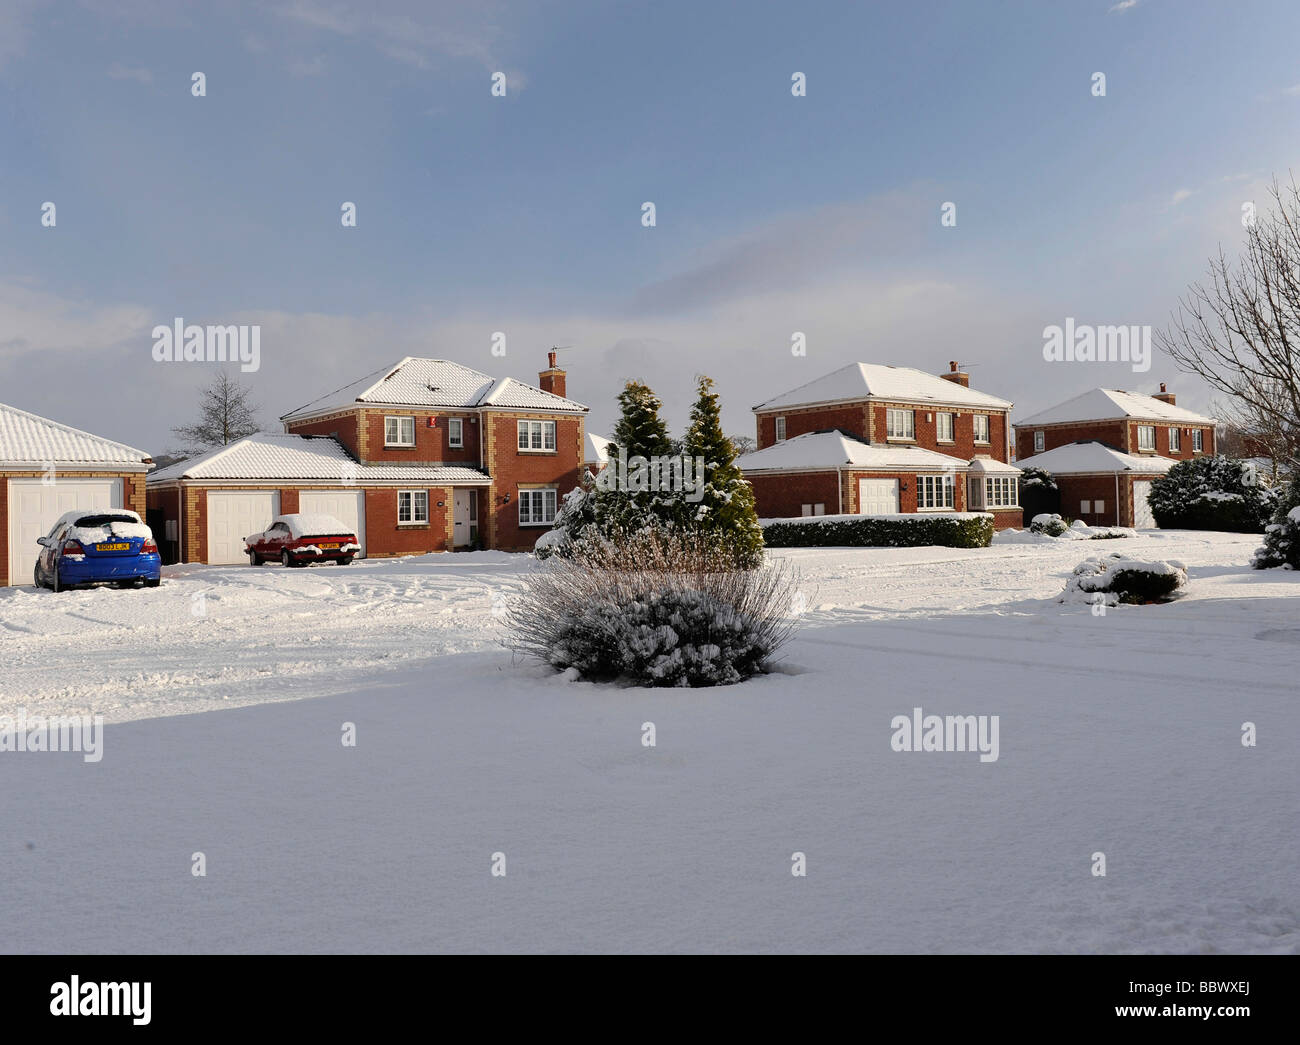 Residential surburban street in Great Britain covered in fresh snow fall - Stock Image